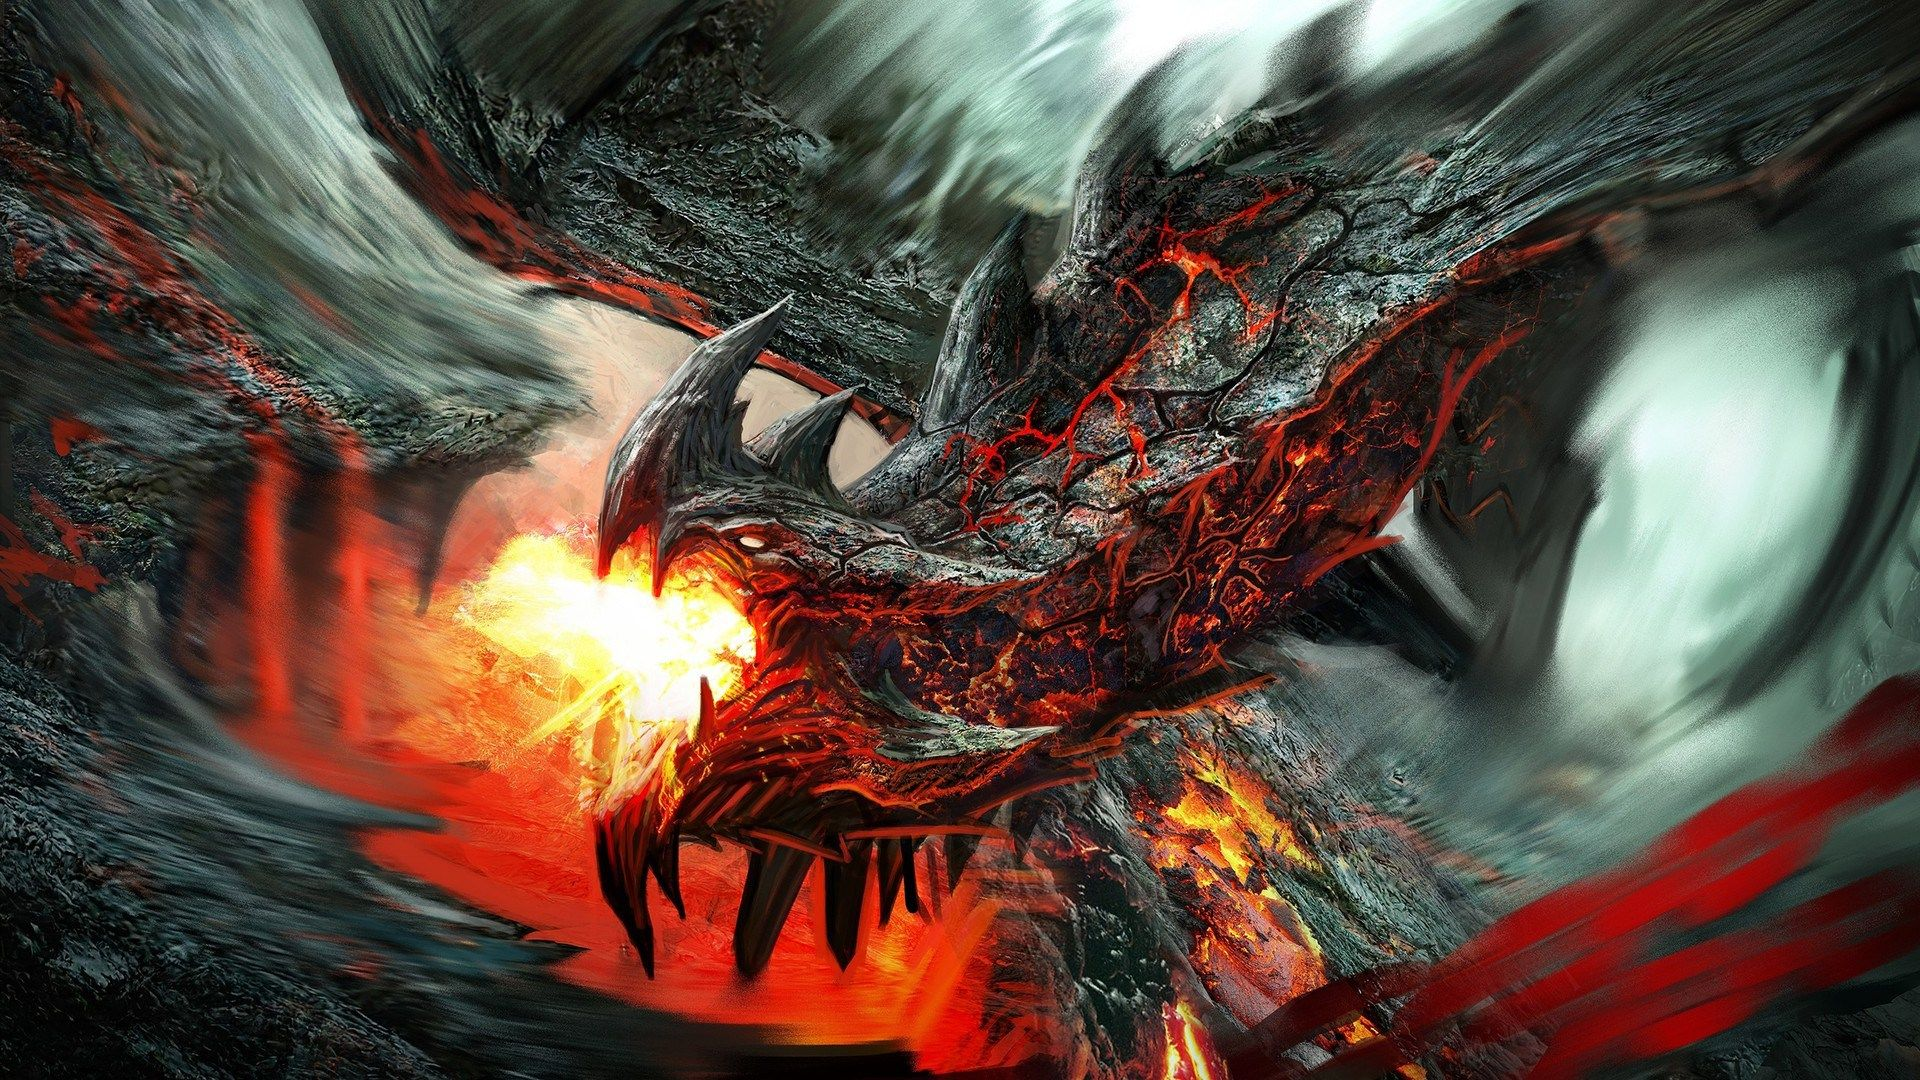 HD Dragon Wallpapers - Top Free HD Dragon Backgrounds